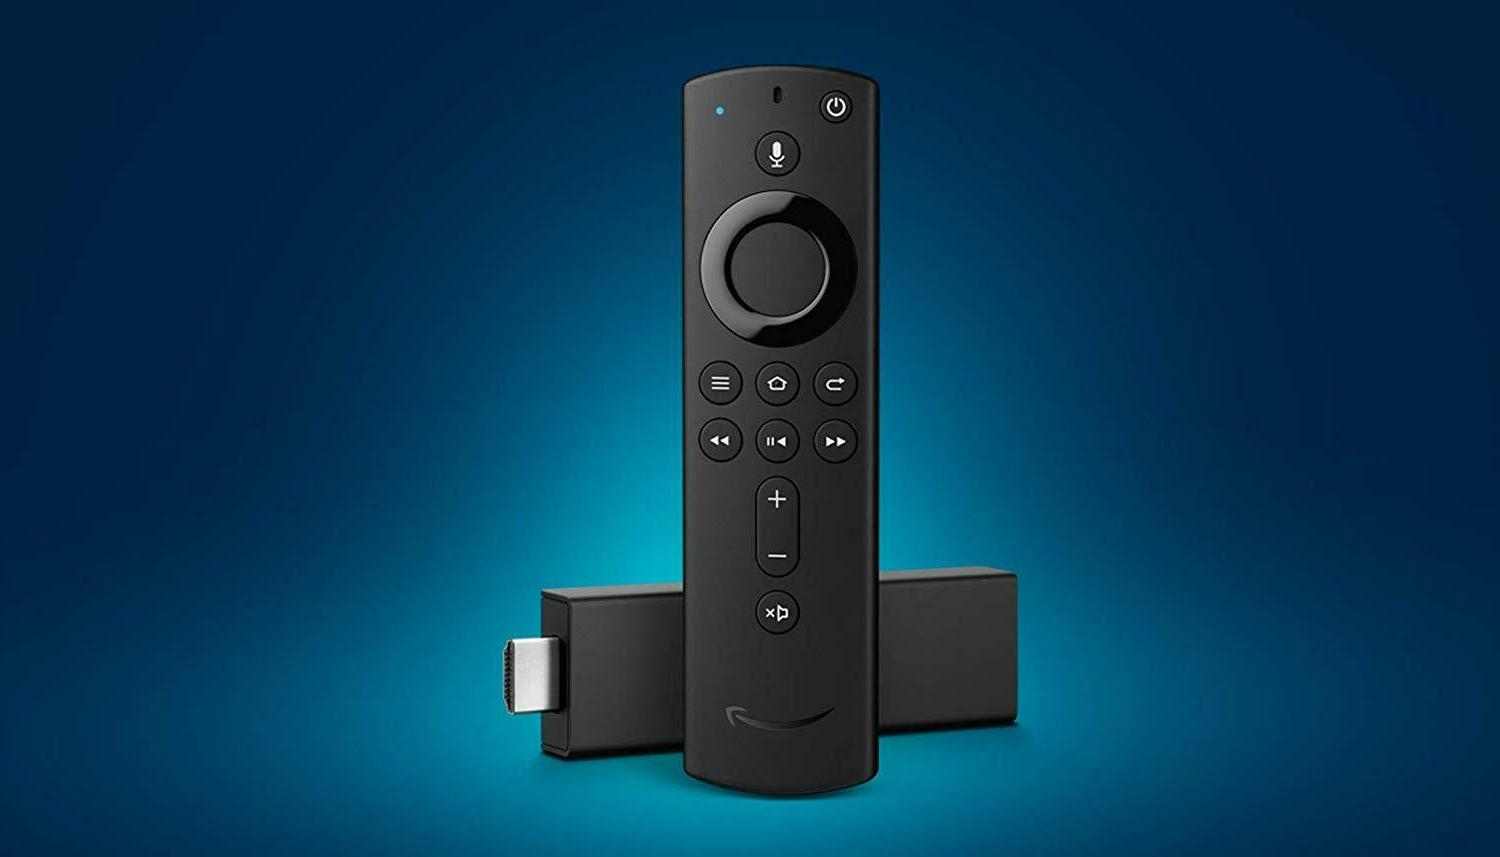 Fire TV Stick with Remote Streaming Media